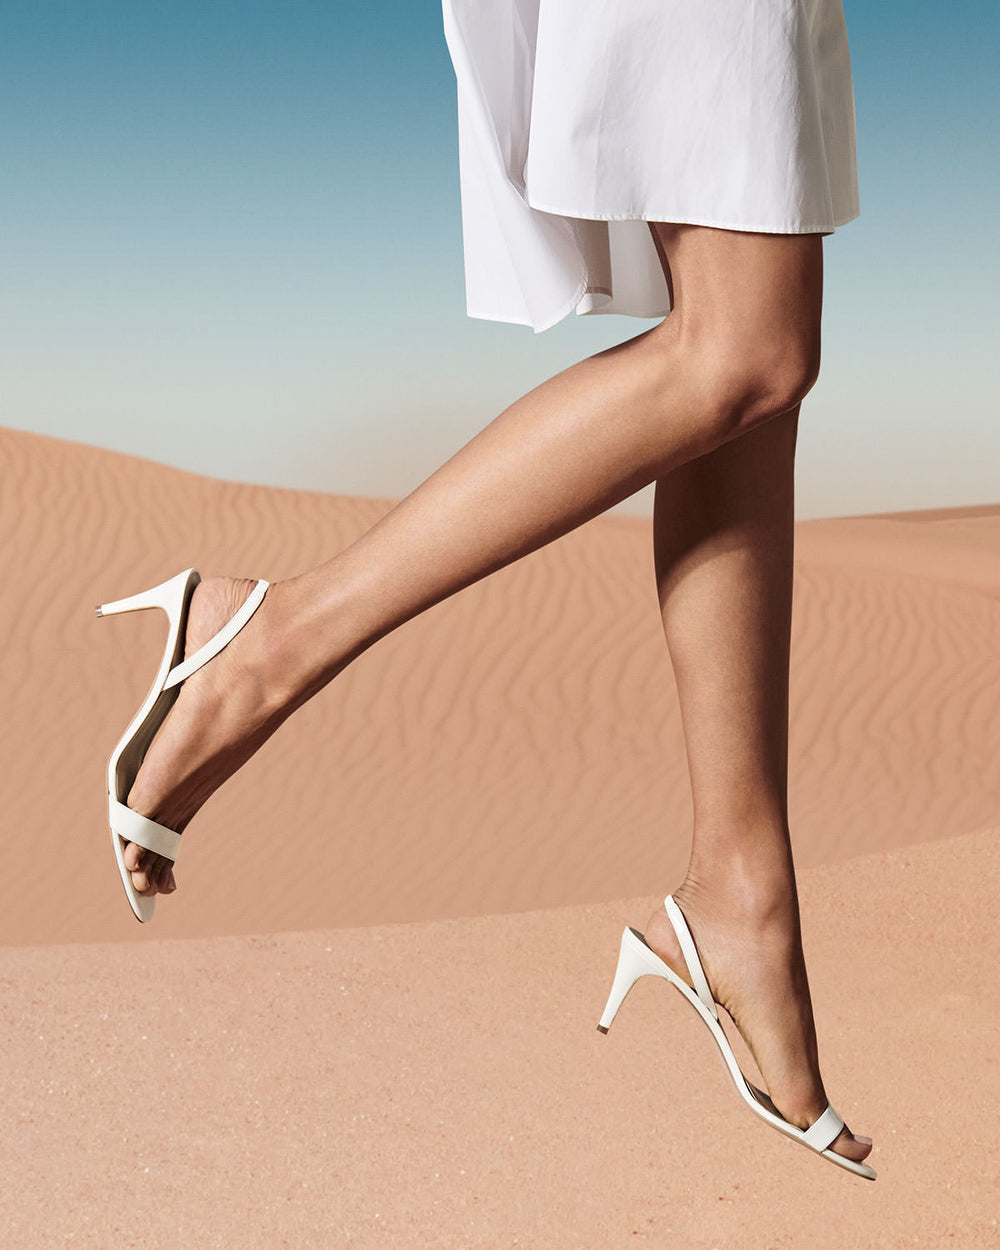 AERA Campaign. Legs with white AERA shoes jumping in the desert